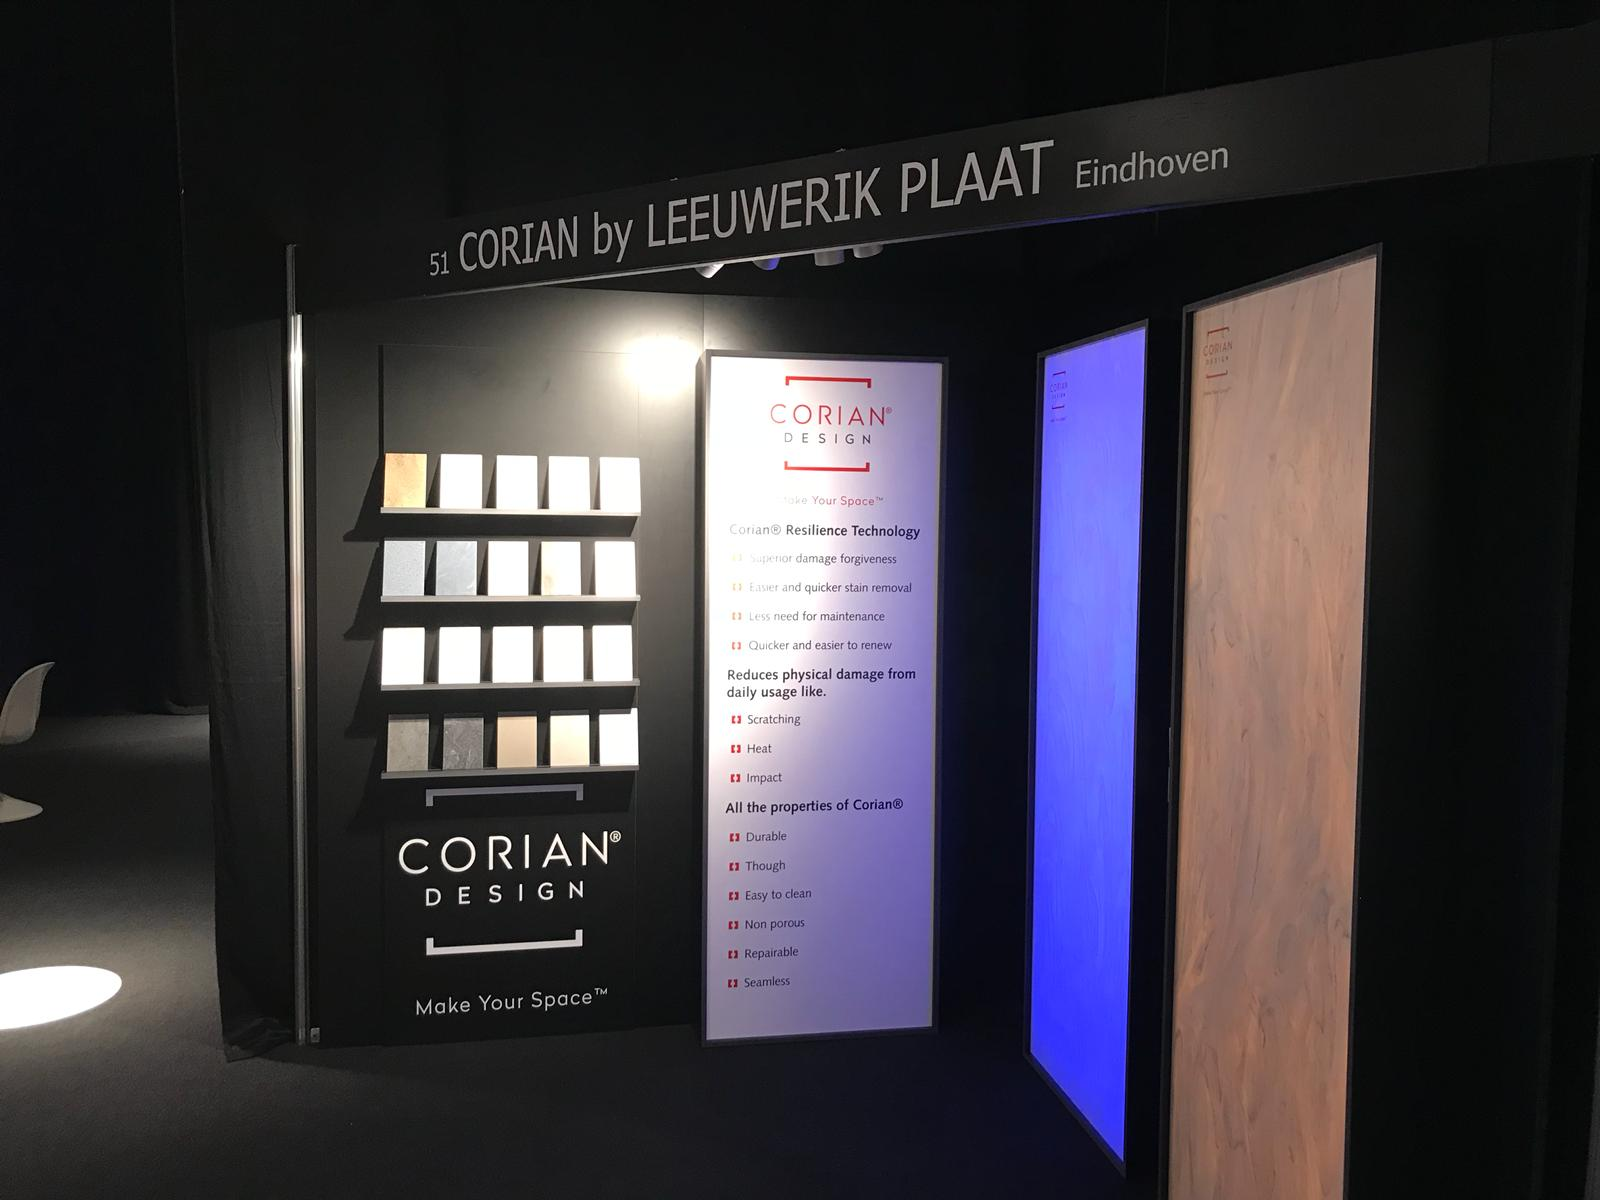 Innovaties van Polyrey en Corian® op Architect@Work